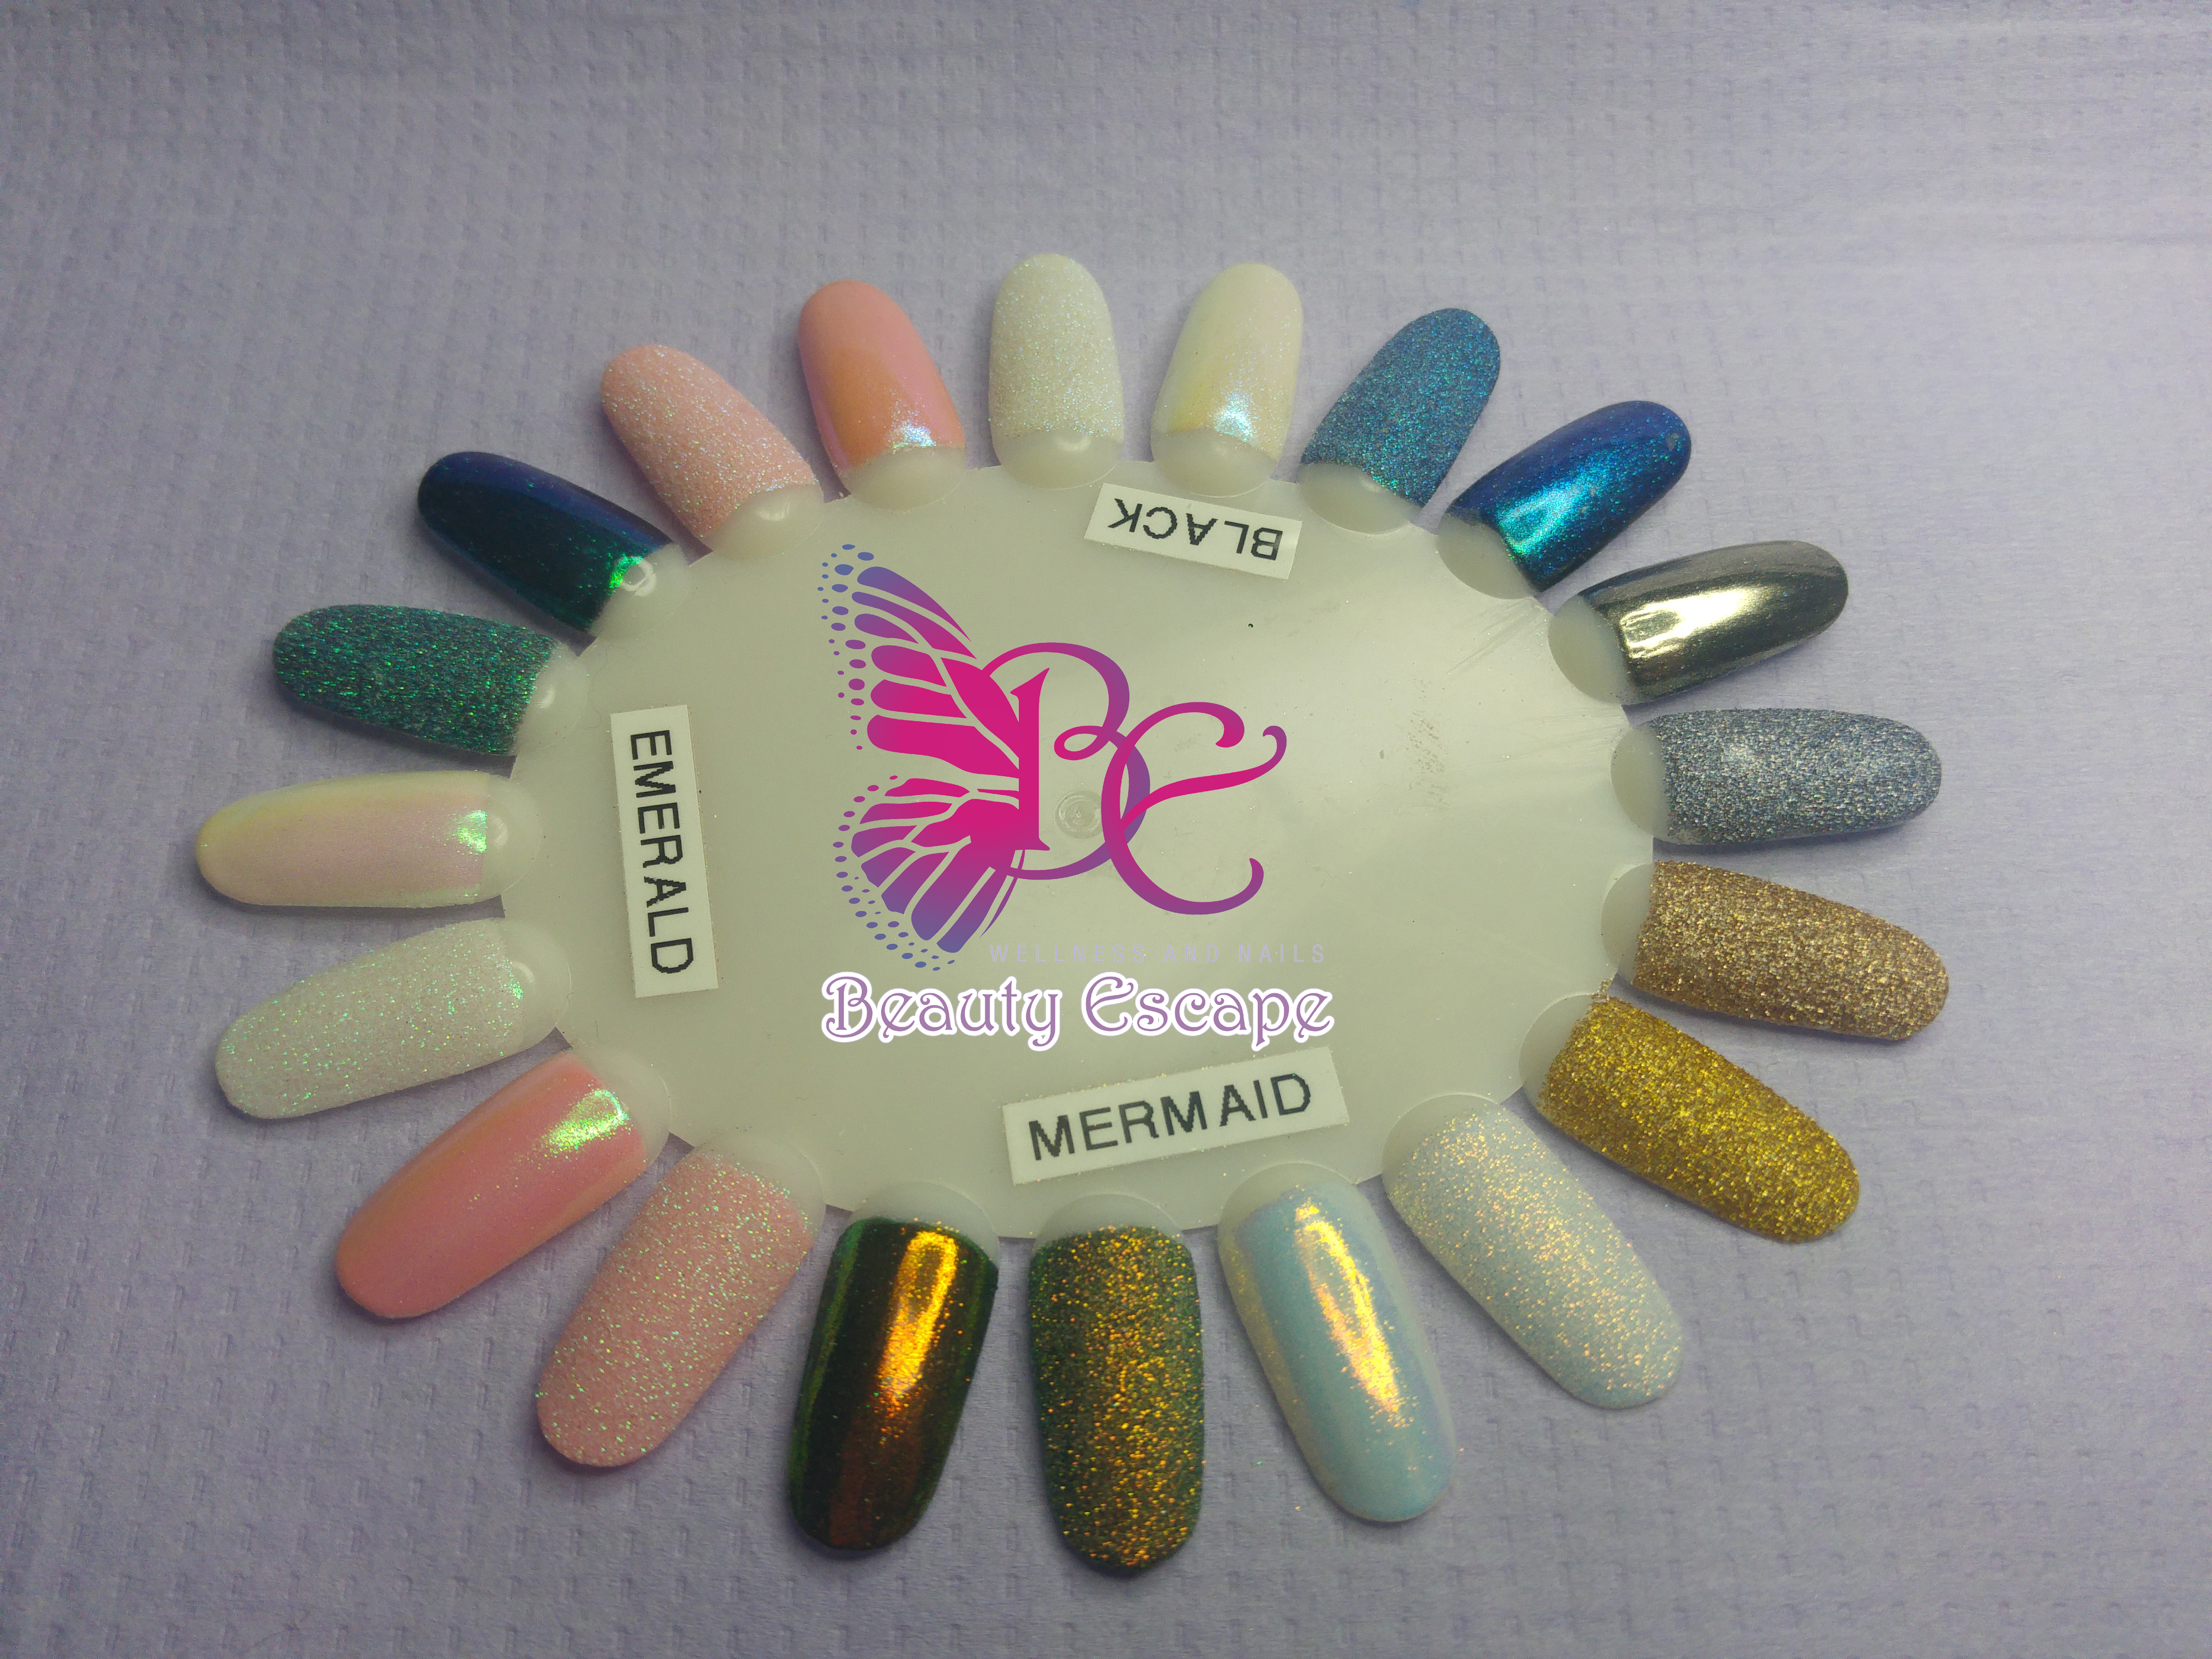 beauty escape nagelsalon (5)